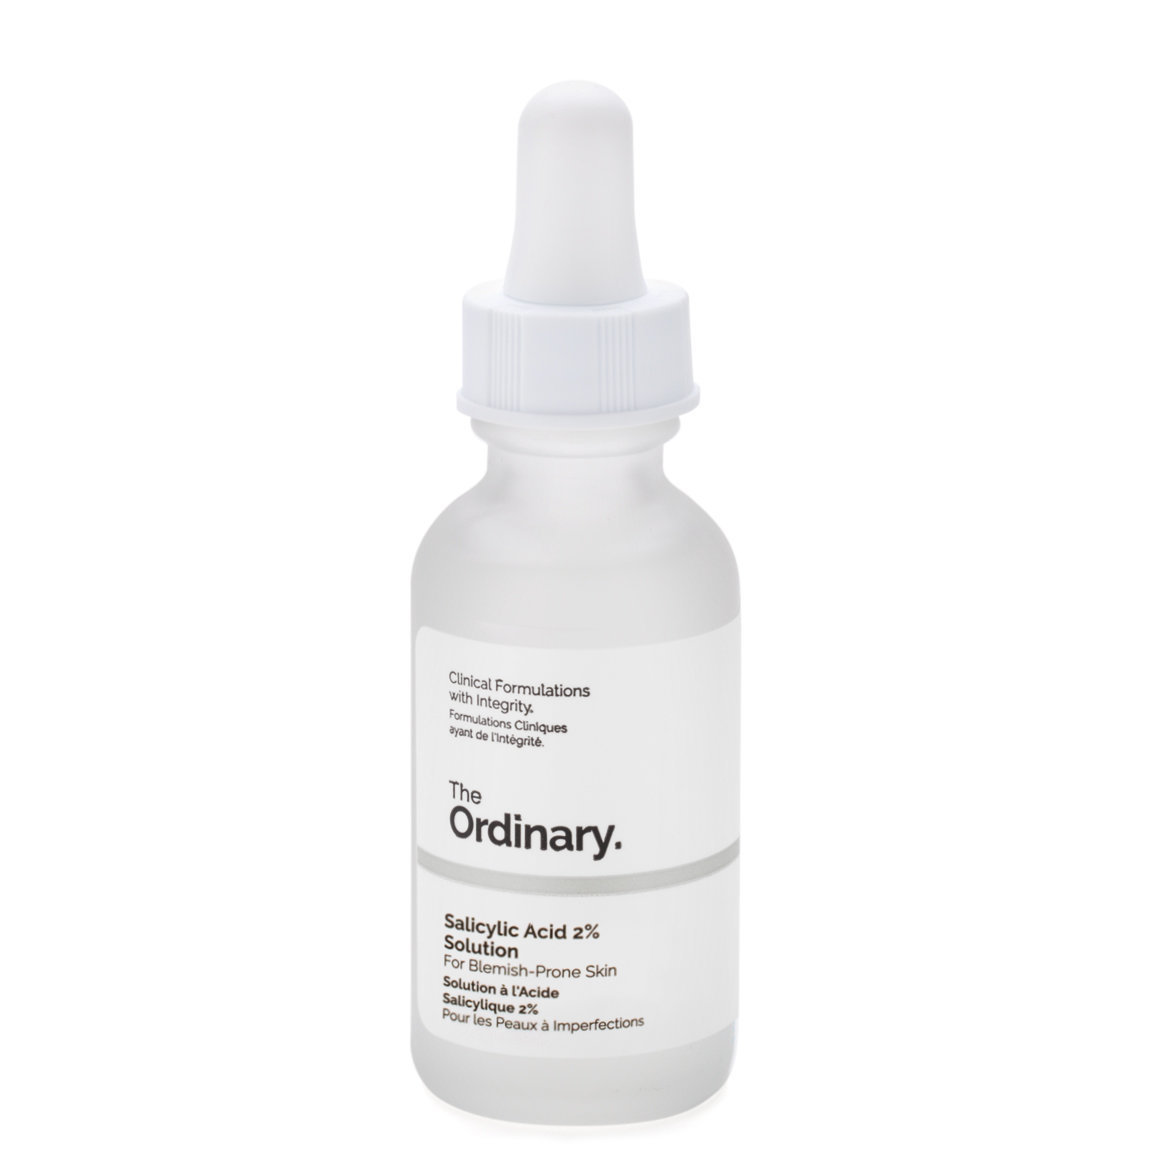 The Ordinary. Salicylic Acid 2% Solution product smear.